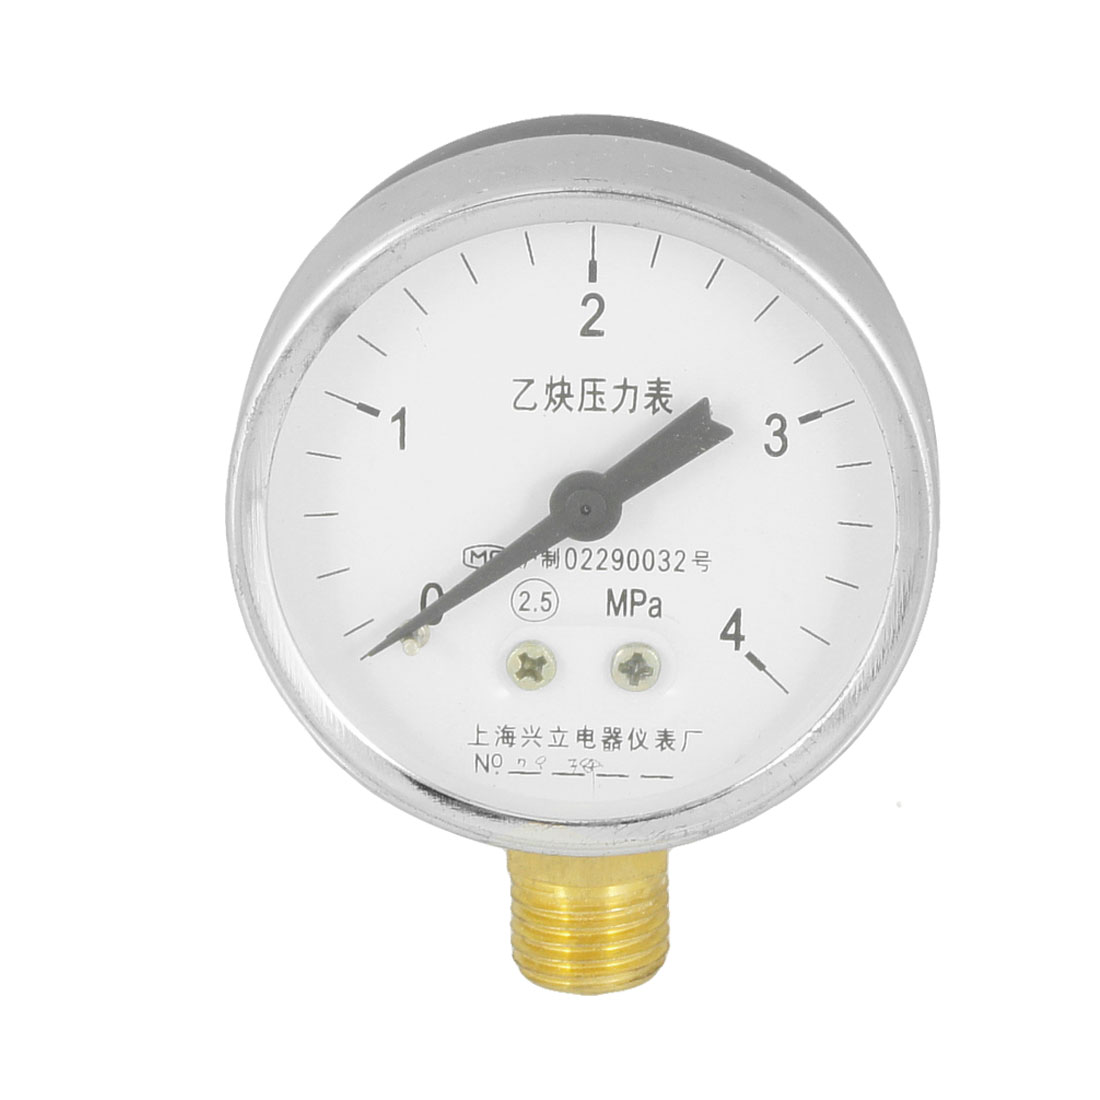 2.5 Accuracy Class 0-4 Mpa 14mm Thread Metal Shell Acetylene Pressure Gauge